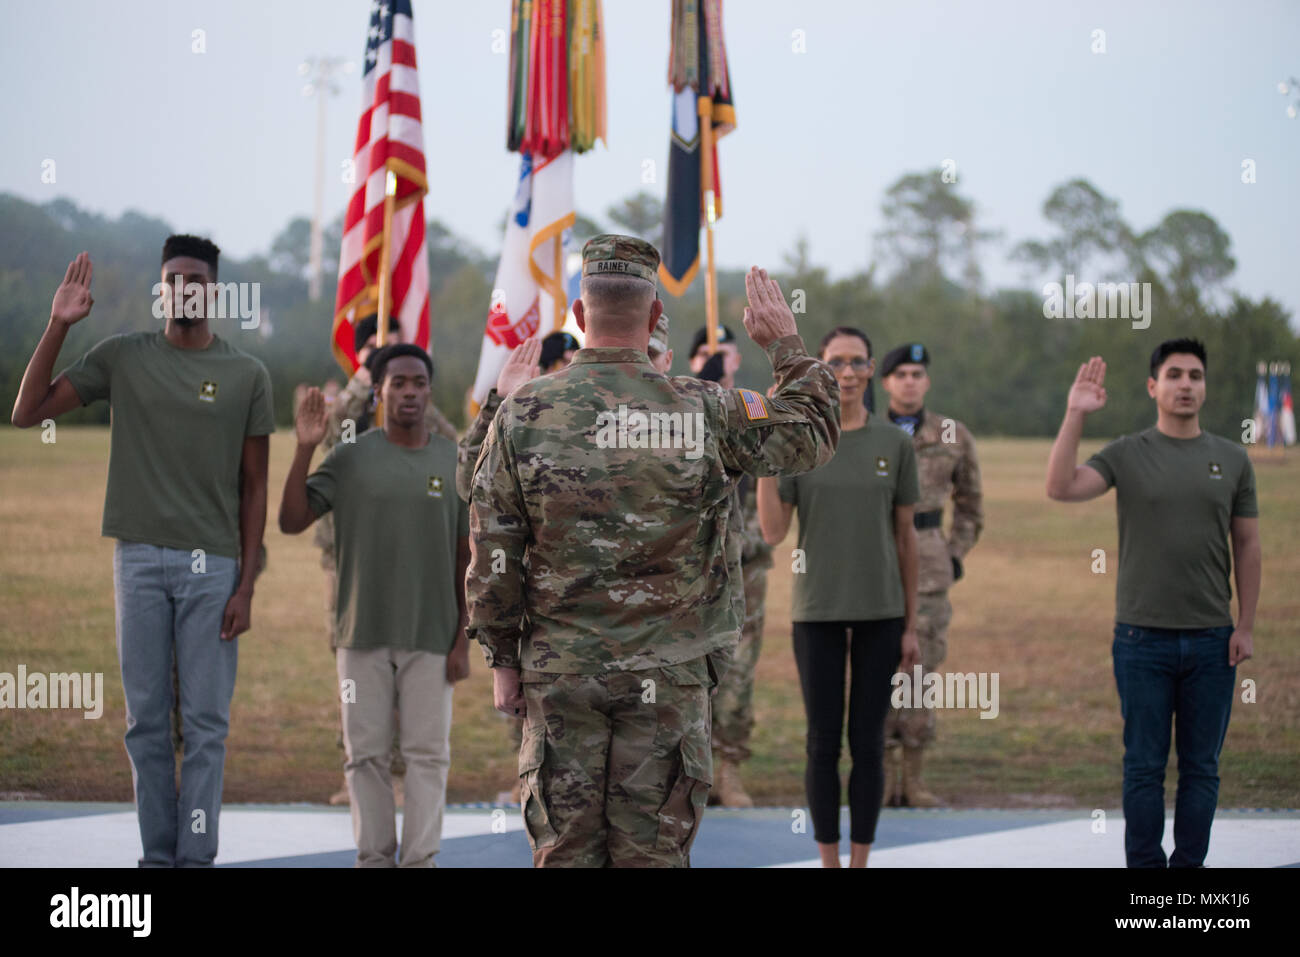 Maj. Gen. Jim Rainey, commanding general of 3rd Infantry Division reenists soldiers assigned to Fort Stewart during Twilight Tattoo Nov. 15, 2016. Twilight Tattoo is a ceremony honoring veterans and family members. (Photo by LTC Brian J. Fickel) - Stock Image